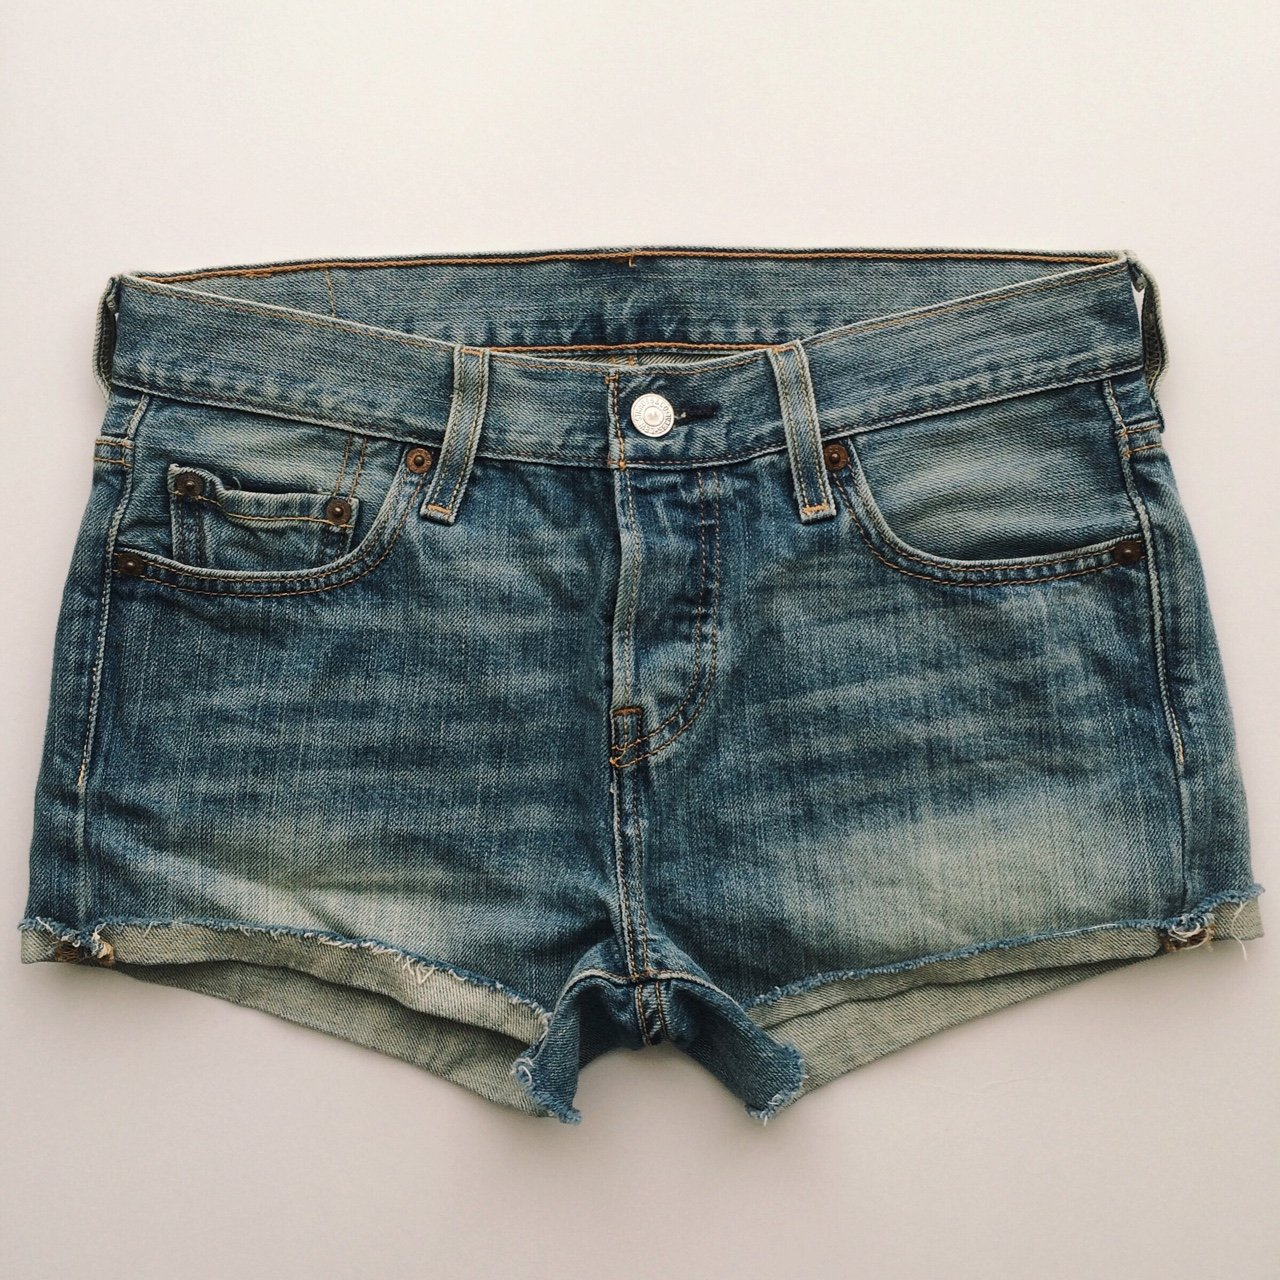 26e31e14c2 Levi's 501 Cut-Off Shorts, purchased at Urban Outfitters. up - Depop